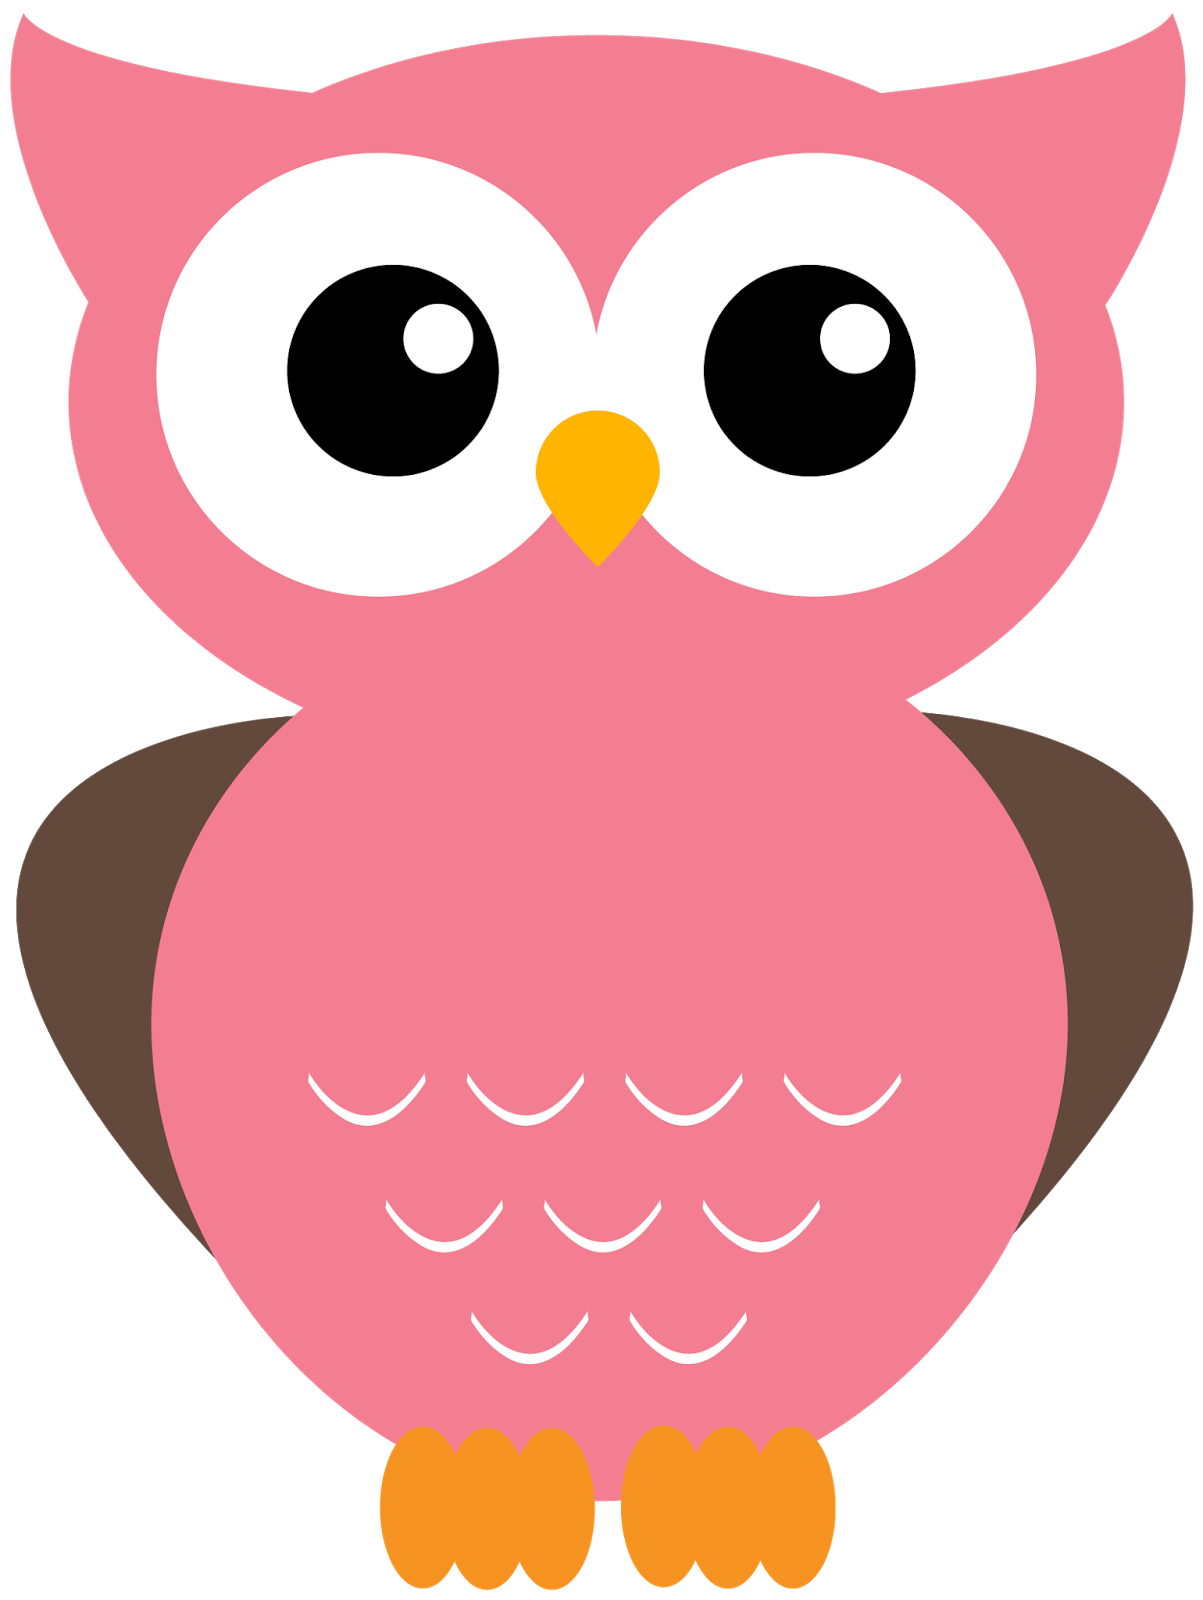 Cute owls clipart owl holding a note